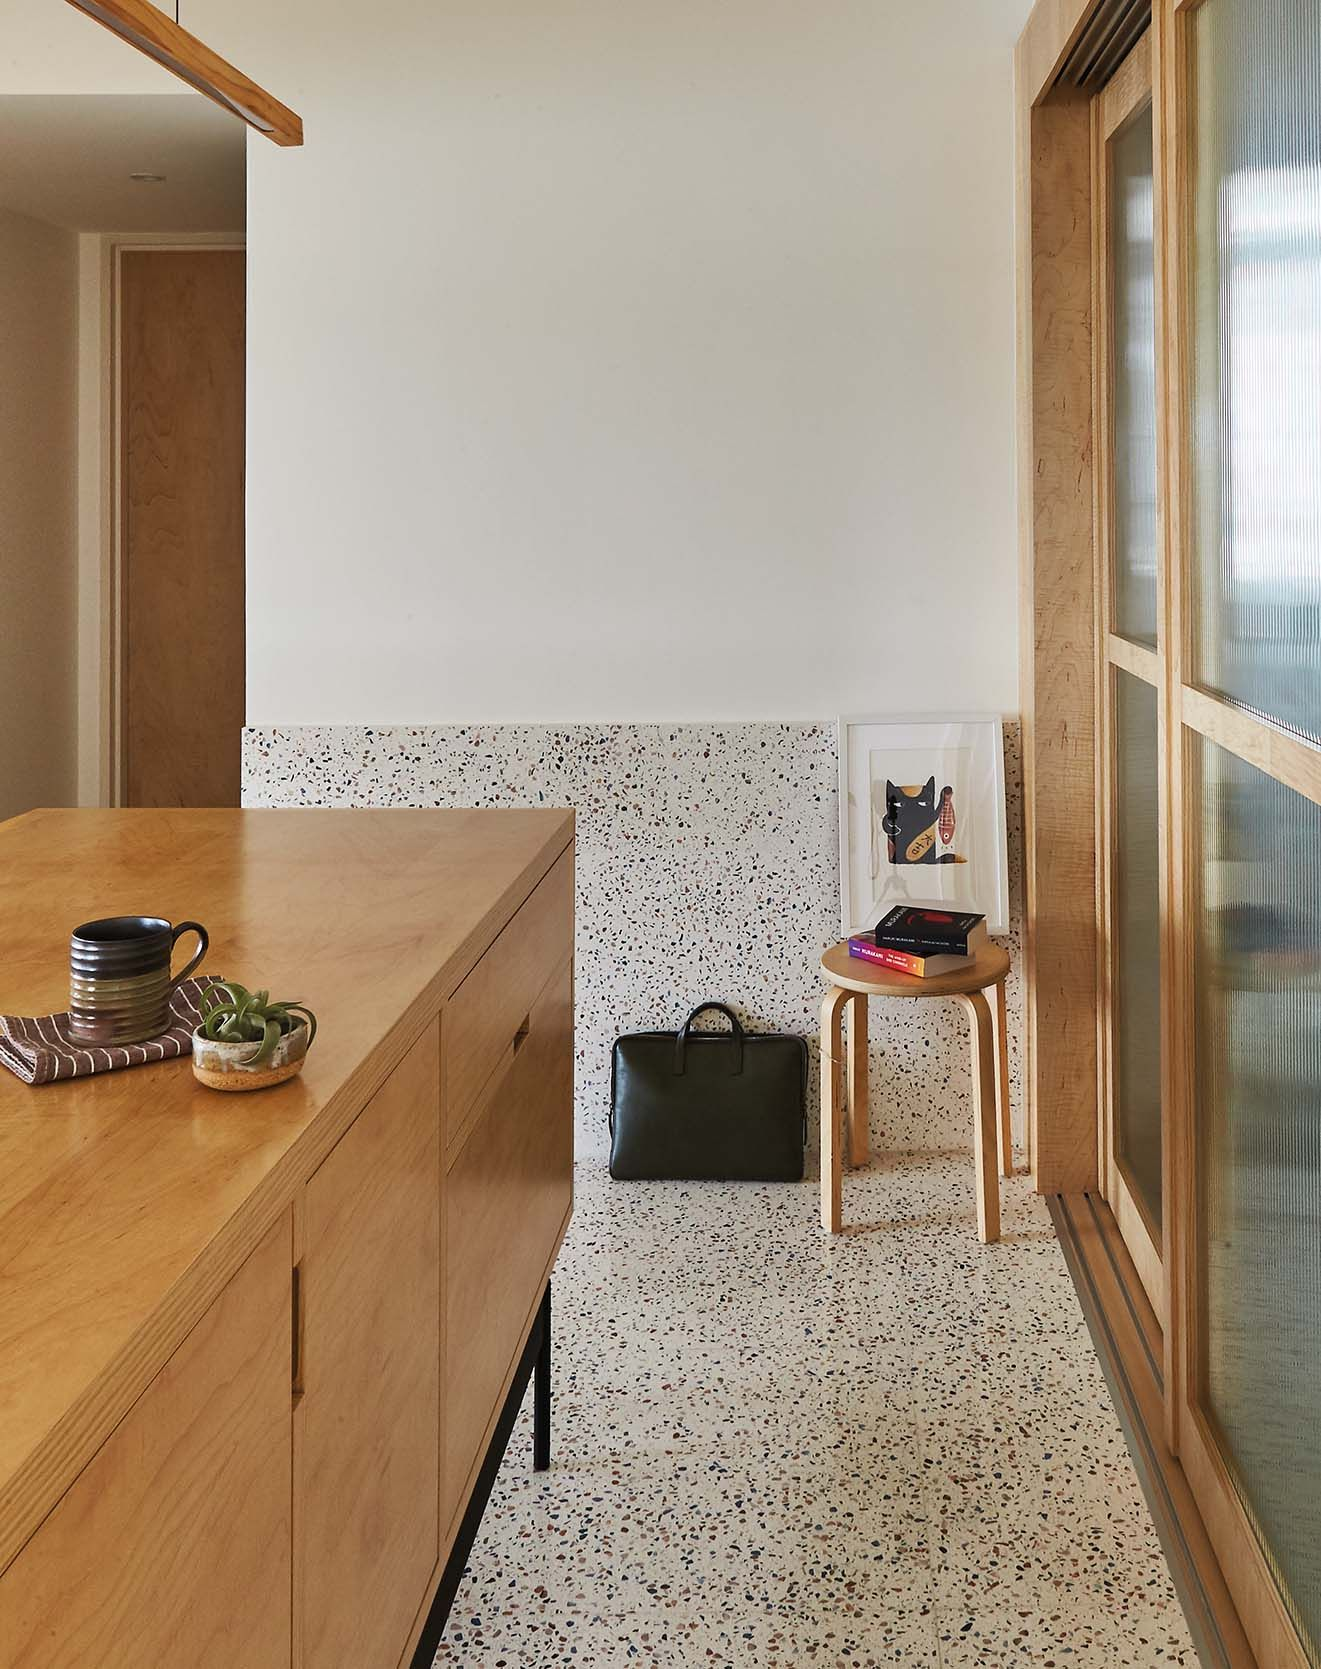 House Tour A fiveroom BTO flat with terrazzo flooring